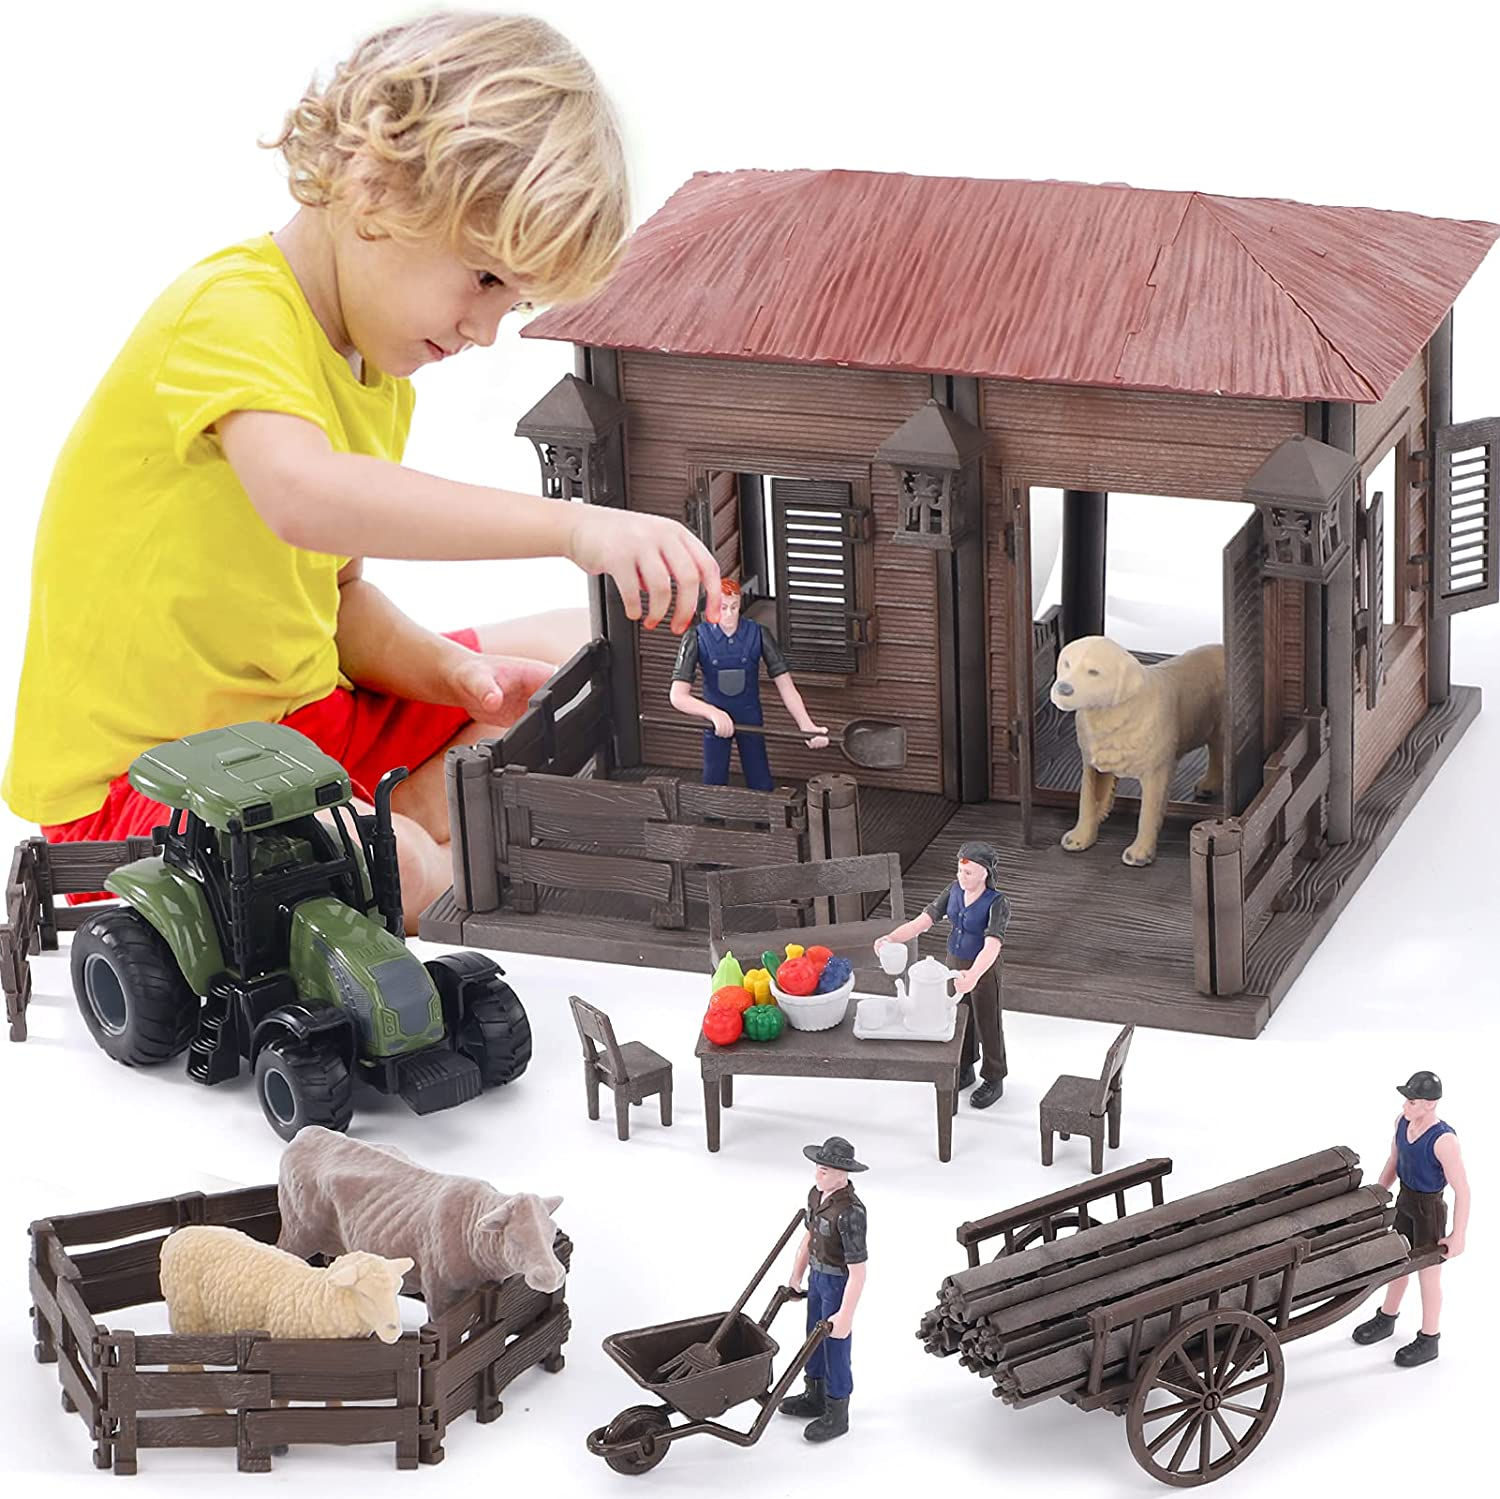 Lucky Doug Max 43% OFF Farm Animal House Toys Rapid rise for Toddlers Ages Kids Playset